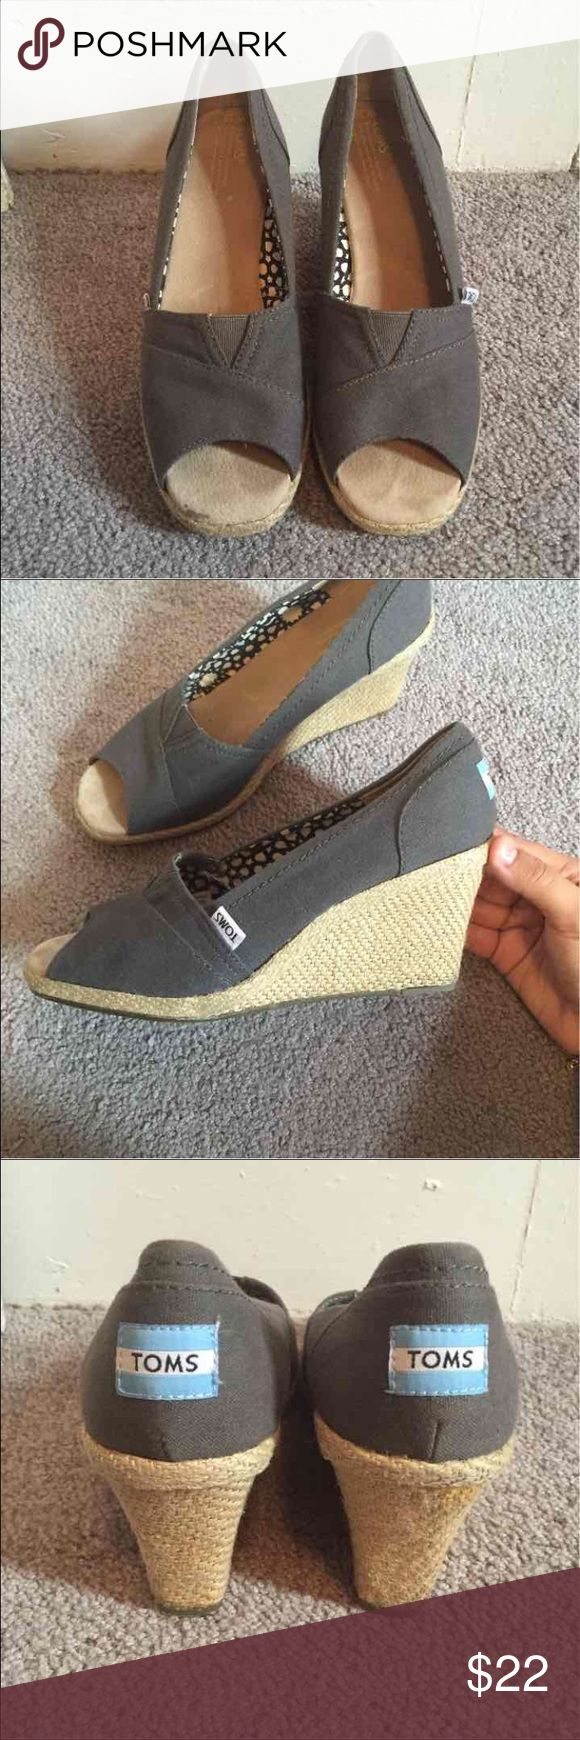 Gray TOMS peeptoe wedges sz 10 Women's gray canvas espadrille TOMS wedges. These are super cute and comfortable! Can be easily dressed up or down. Only flaws are the little spot in the front seen on the bottom left of first pic, and a strange orange line on the right shoe seen in the last pic. Both of these are discreet when they are being worn and could probably be removed! The shoes themselves are in great condition otherwise and weren't worn too much. :) Toms Shoes Wedges